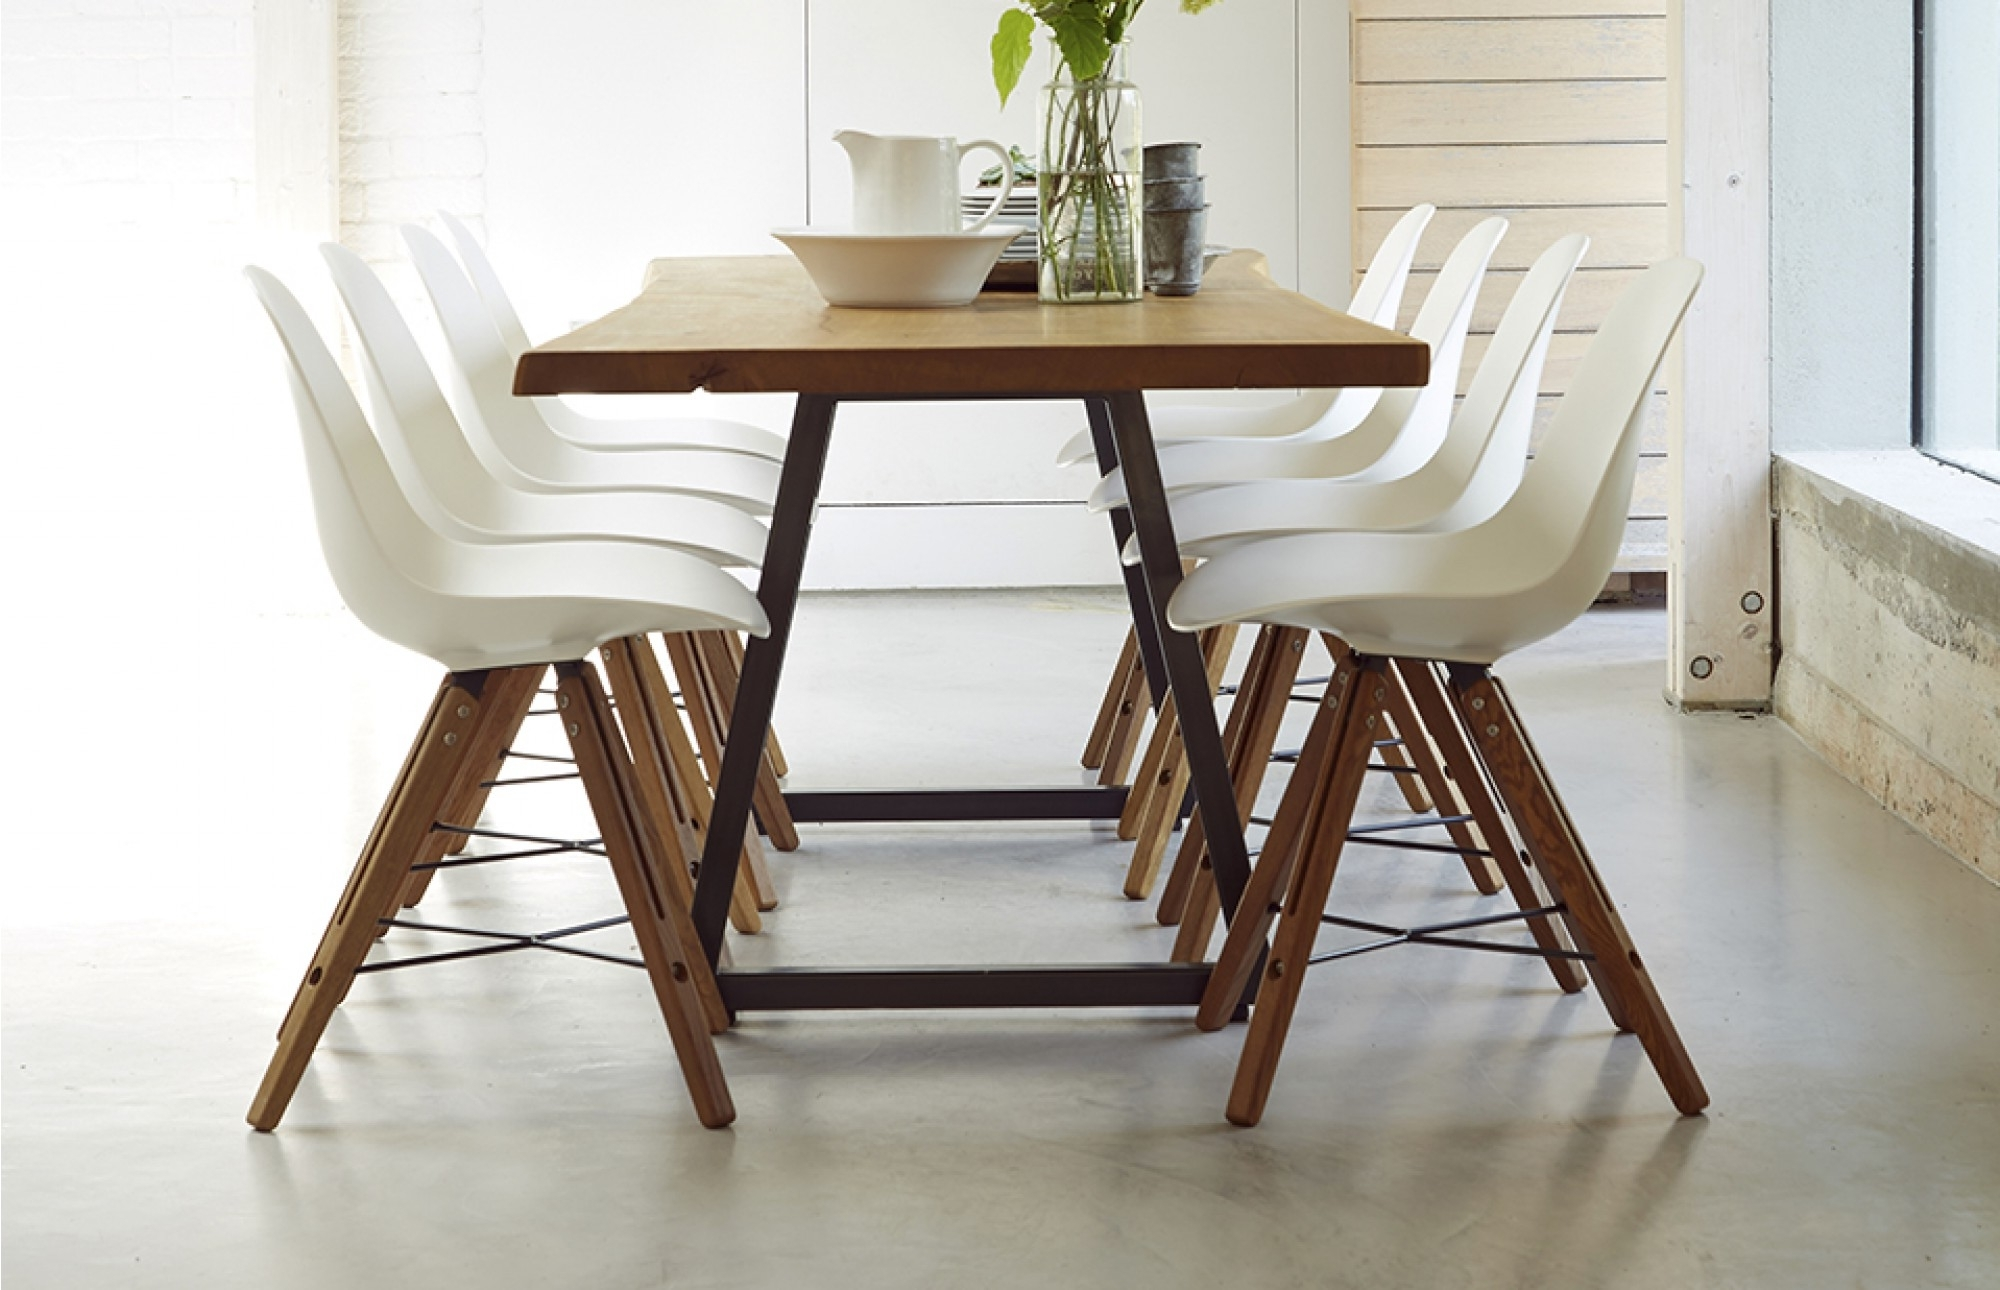 Preferred Dining Tables: Marvellous 8 Seater Dining Table Set Square Dining Within 10 Seat Dining Tables And Chairs (View 11 of 25)